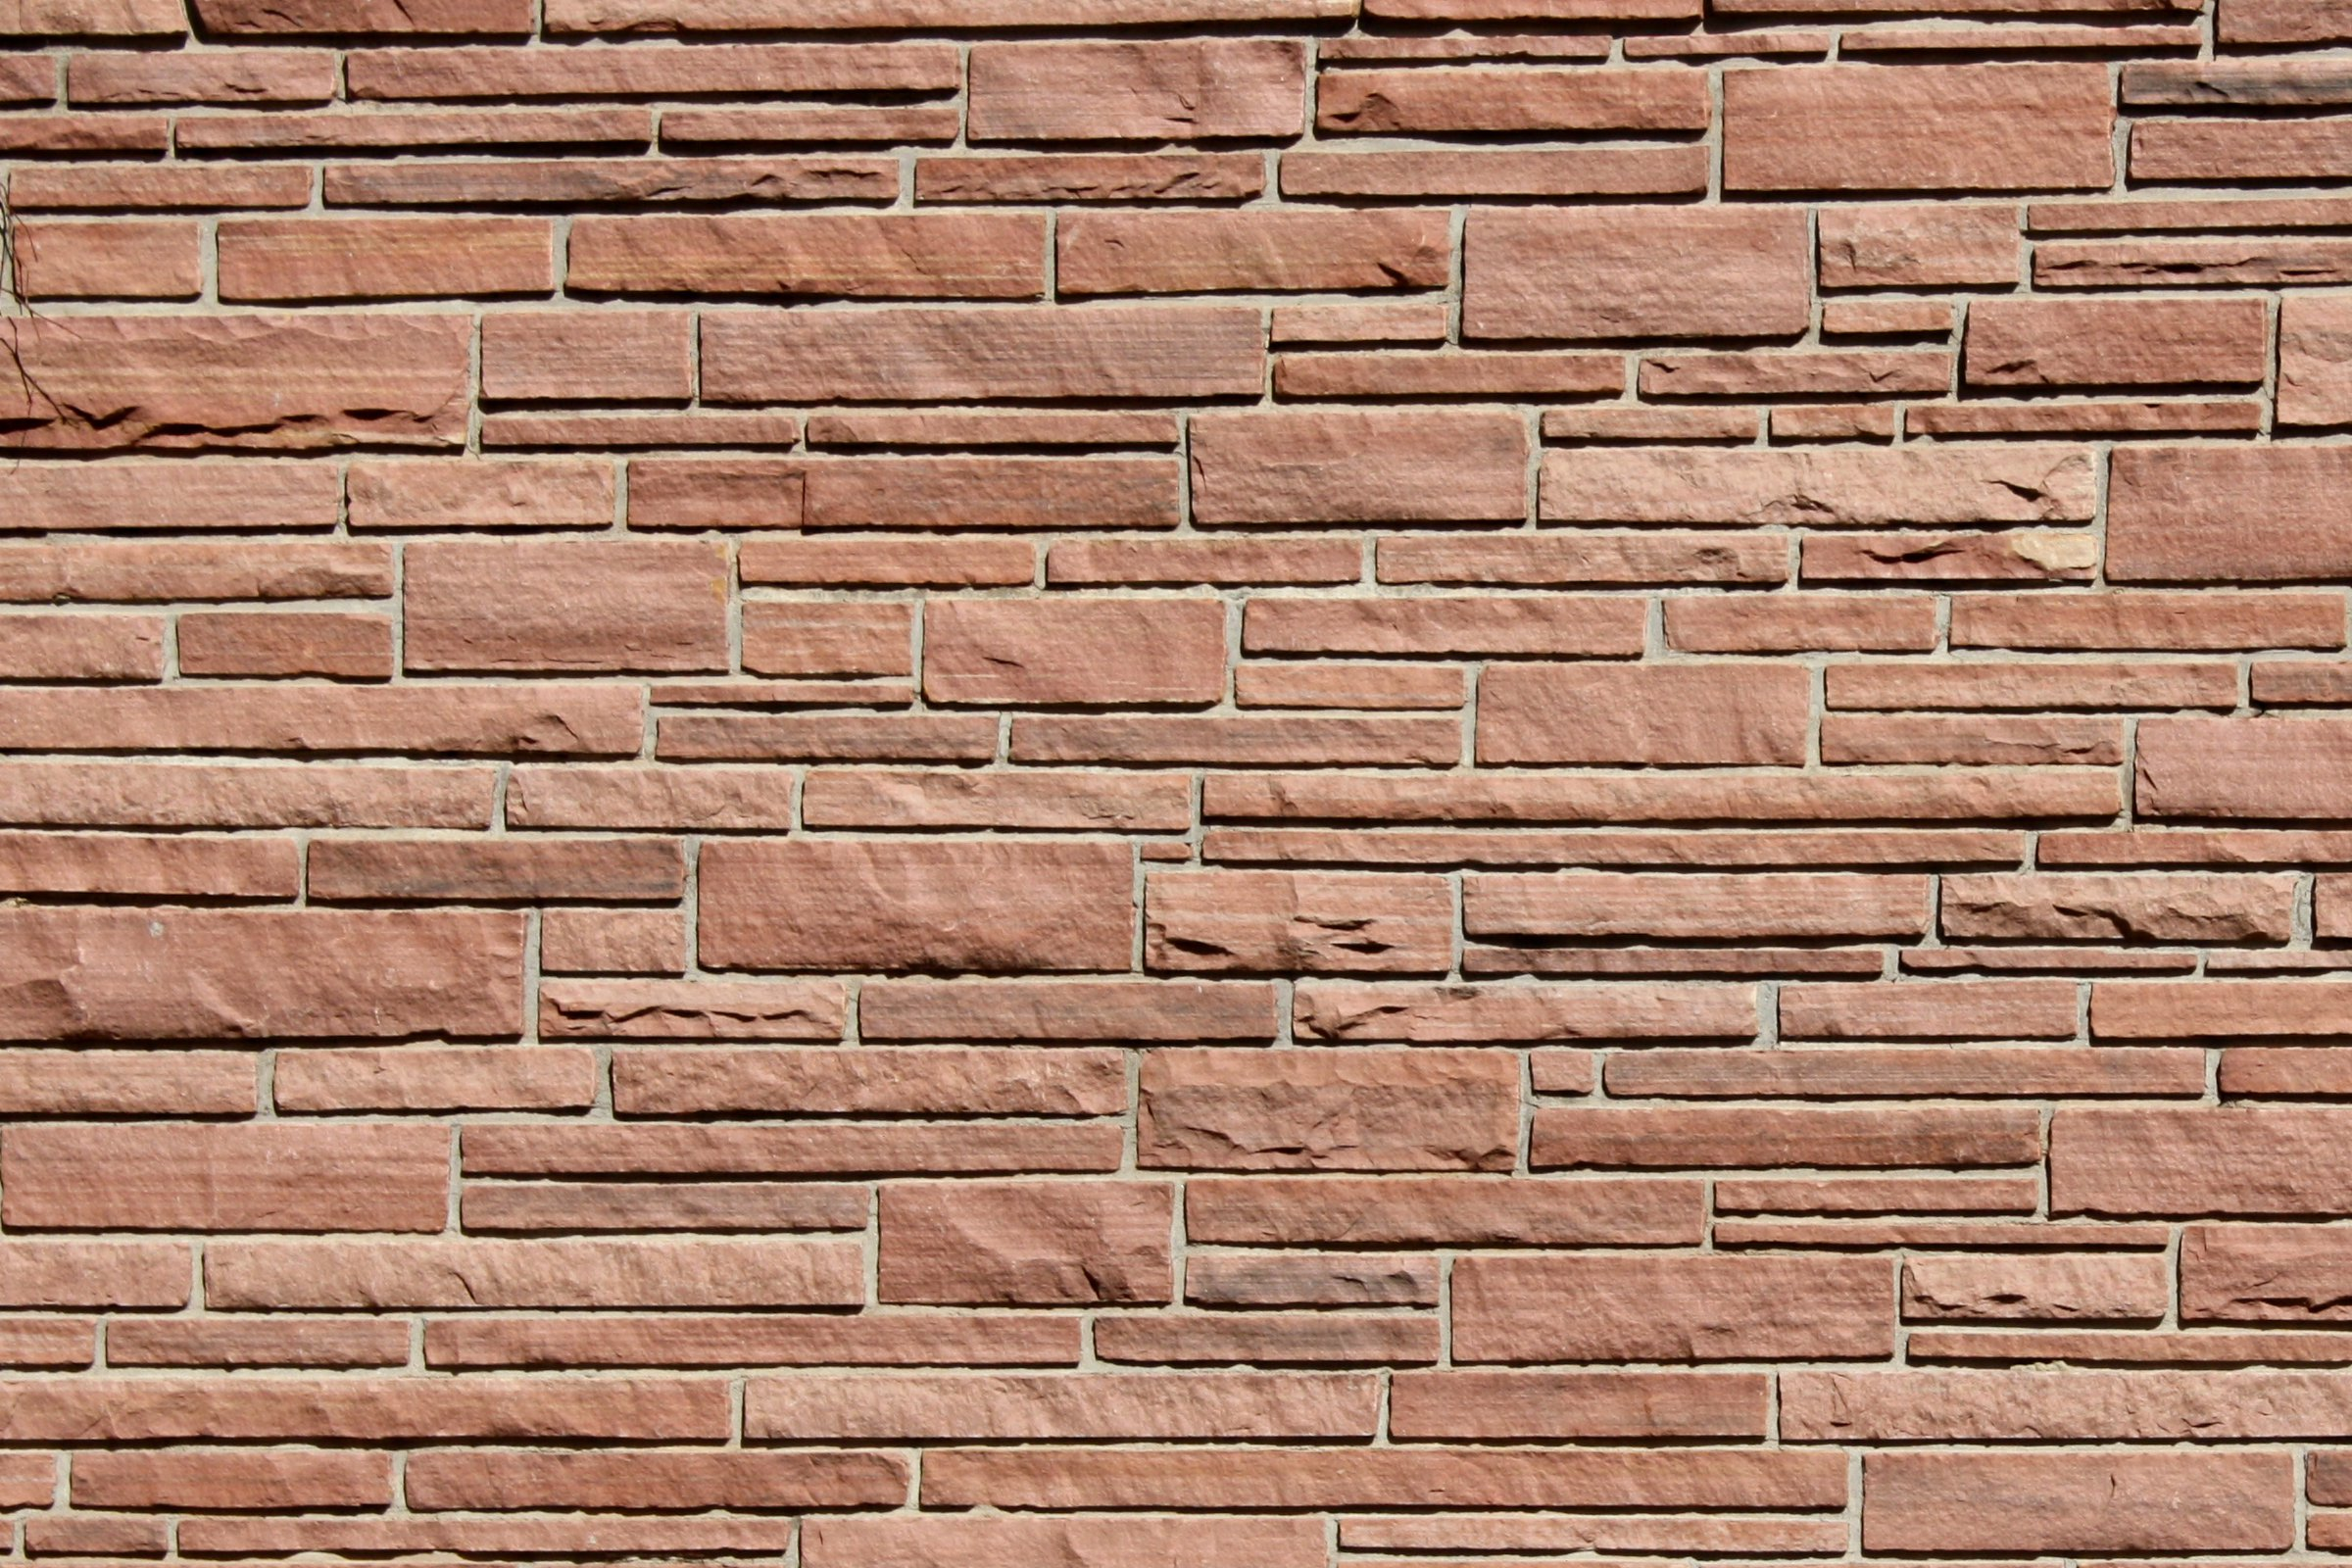 Red Sandstone Wall Images Galleries